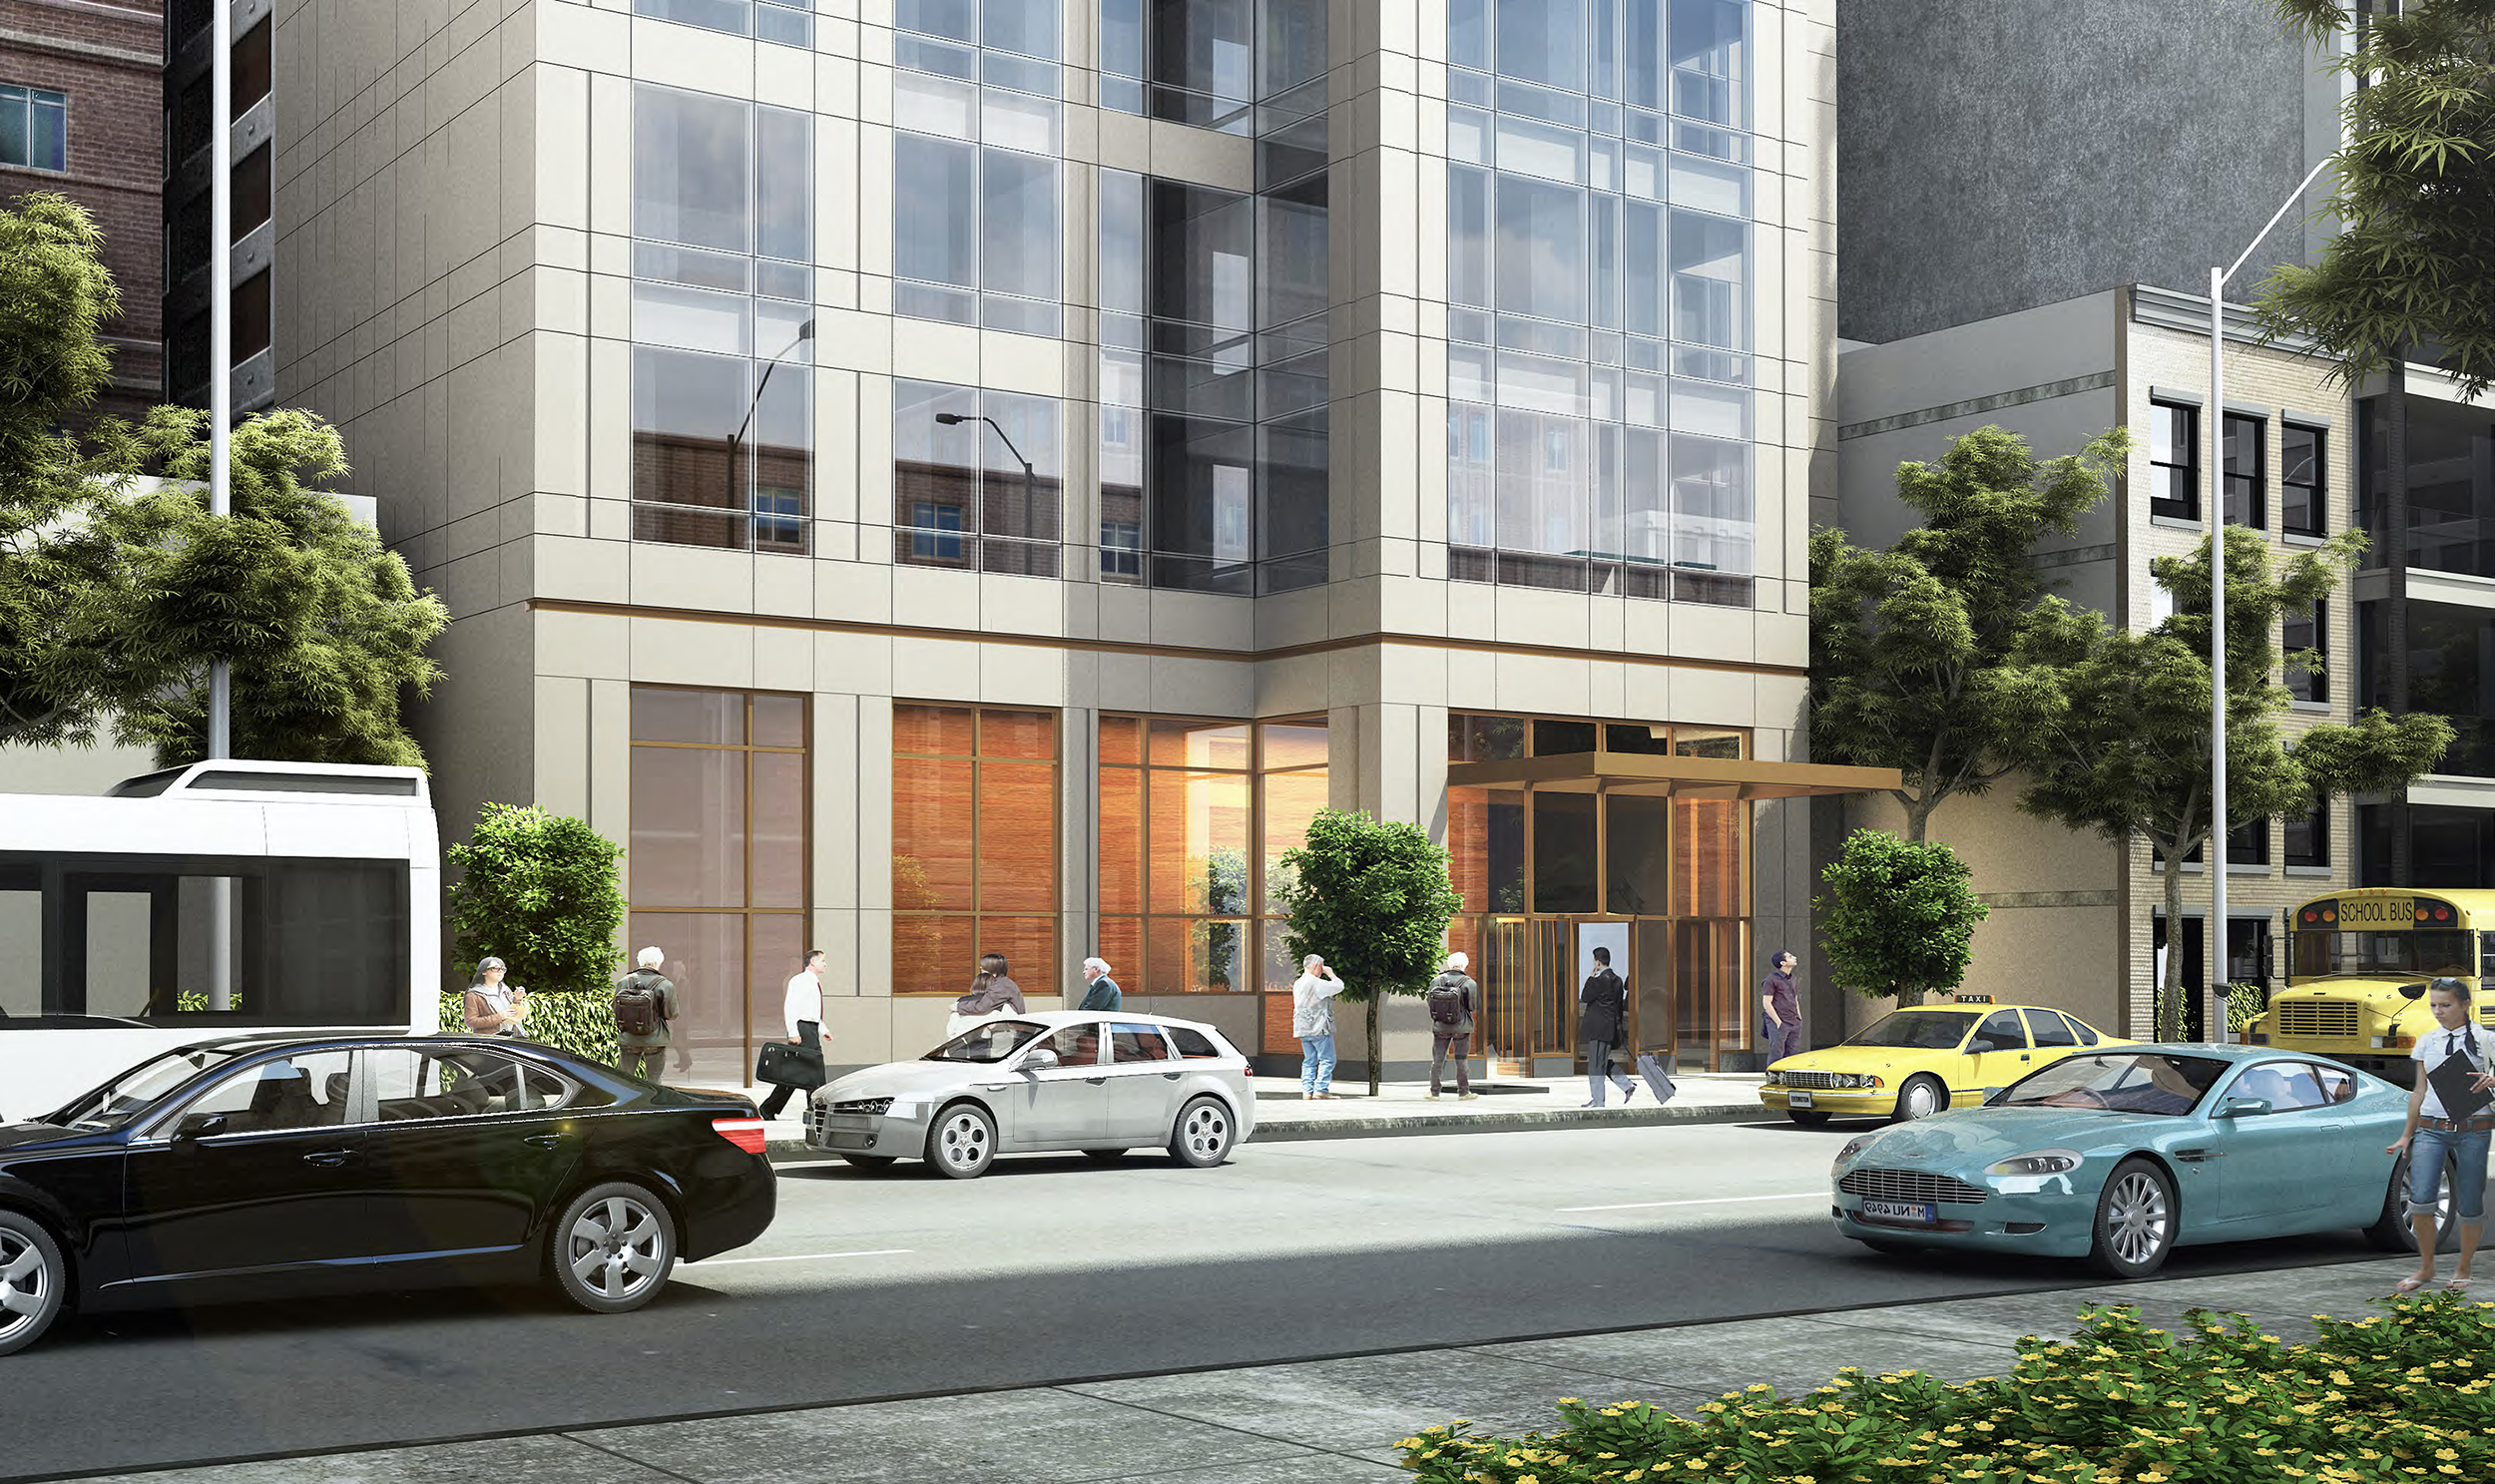 Rendering of 131 East 47th Street. Credit: SLCE Architects